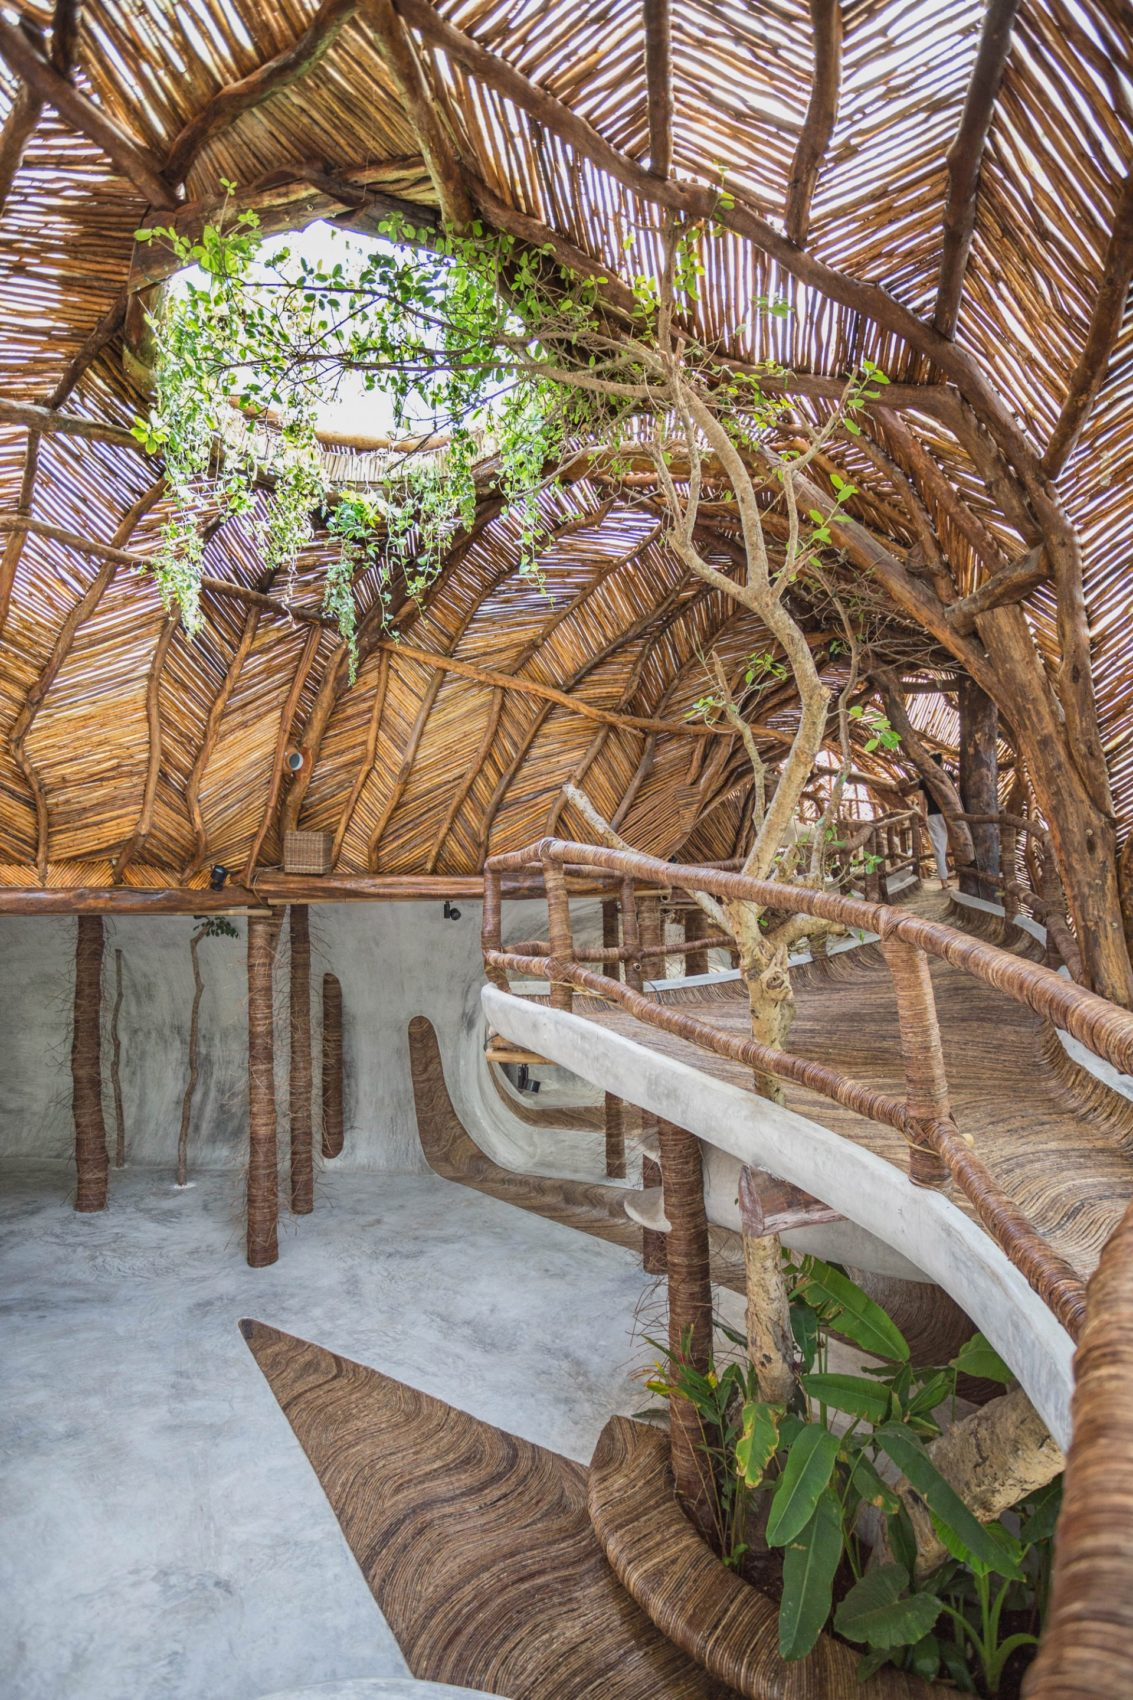 IK Lab Art Gallery Tropical Design in Tulum 2 IK Lab Art Gallery Tropical Design in Tulum